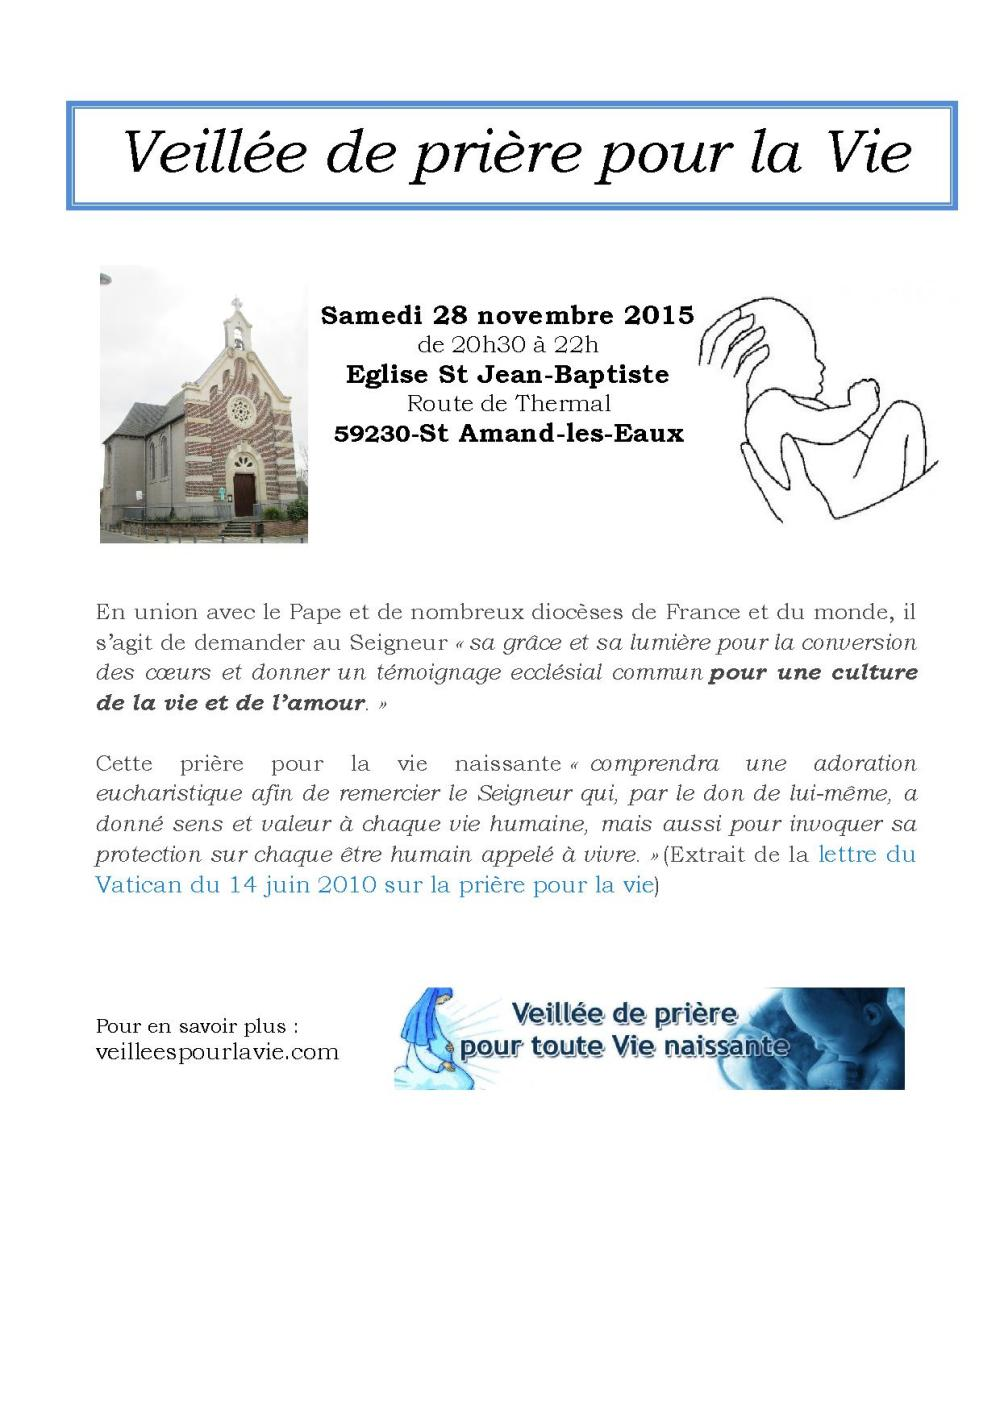 invitationVeilléeVie2015